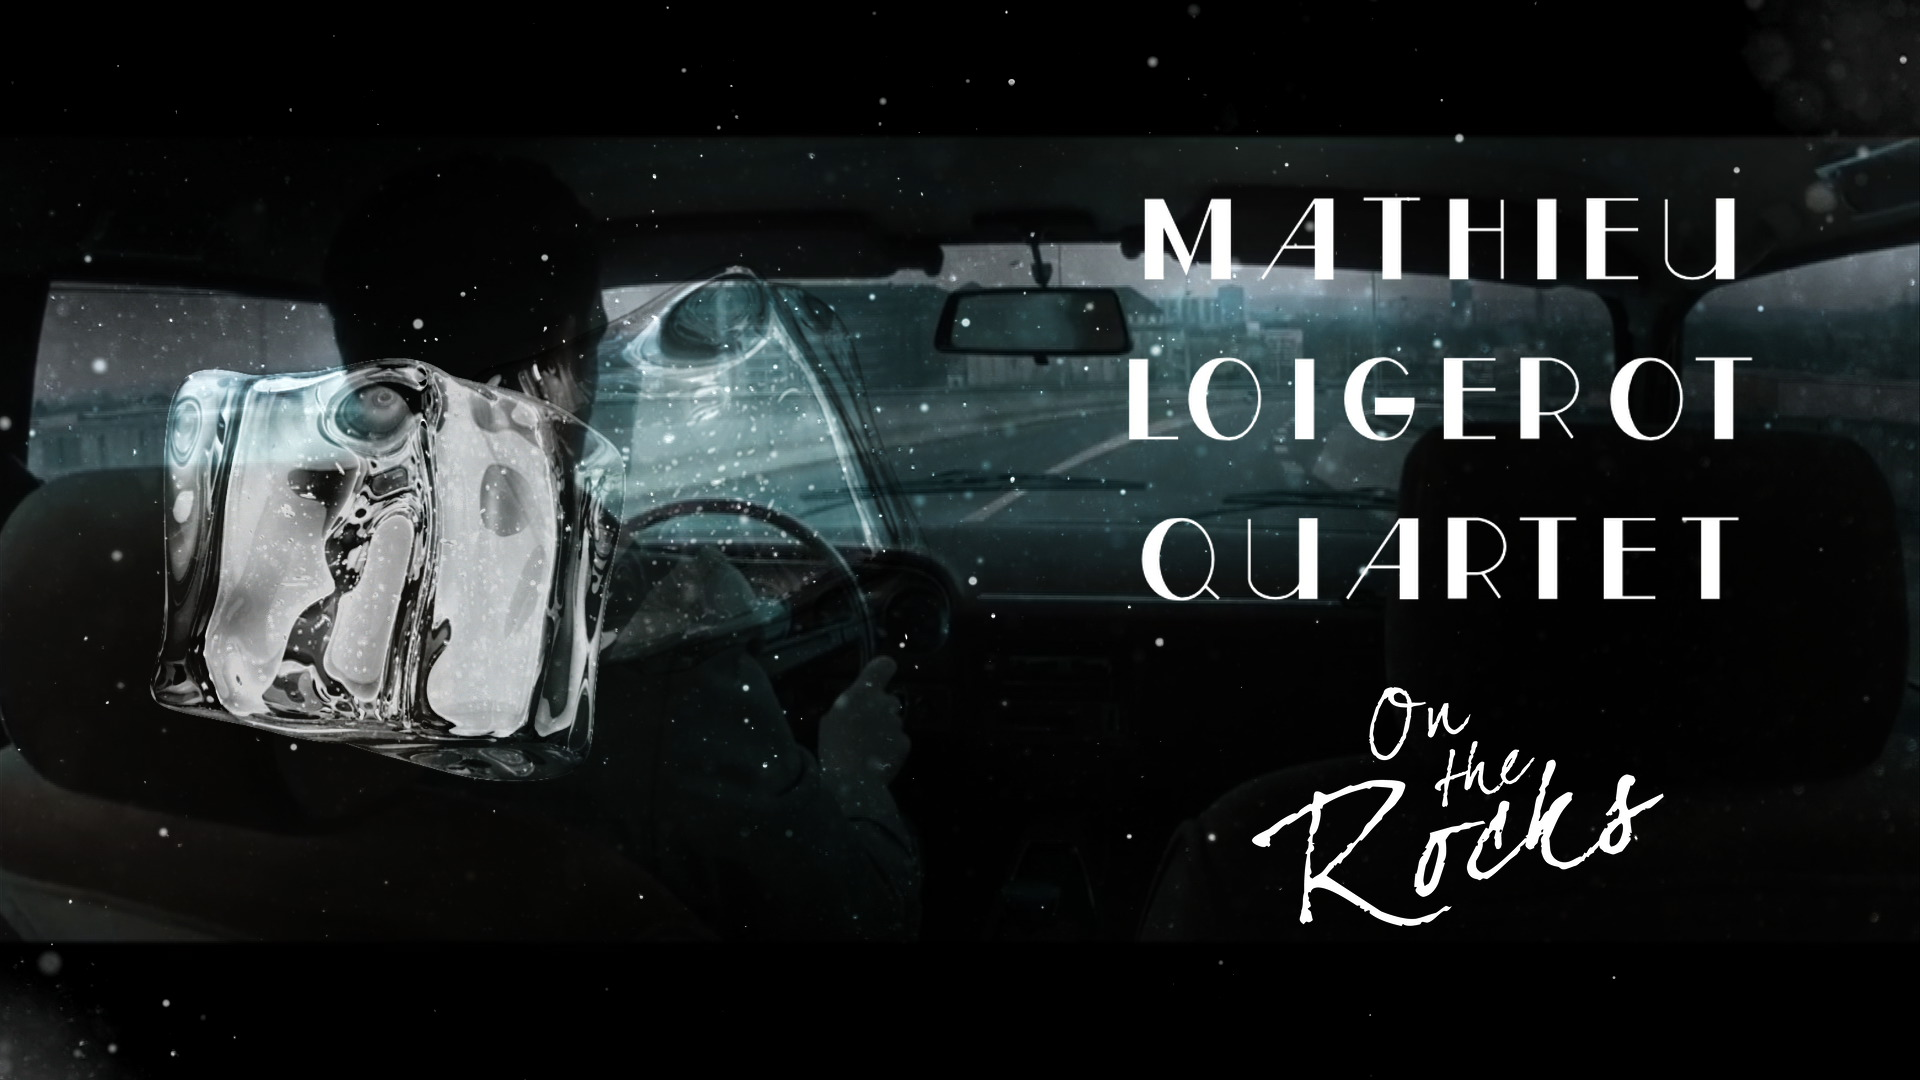 Mathieu Loigerot officiel on the rocks